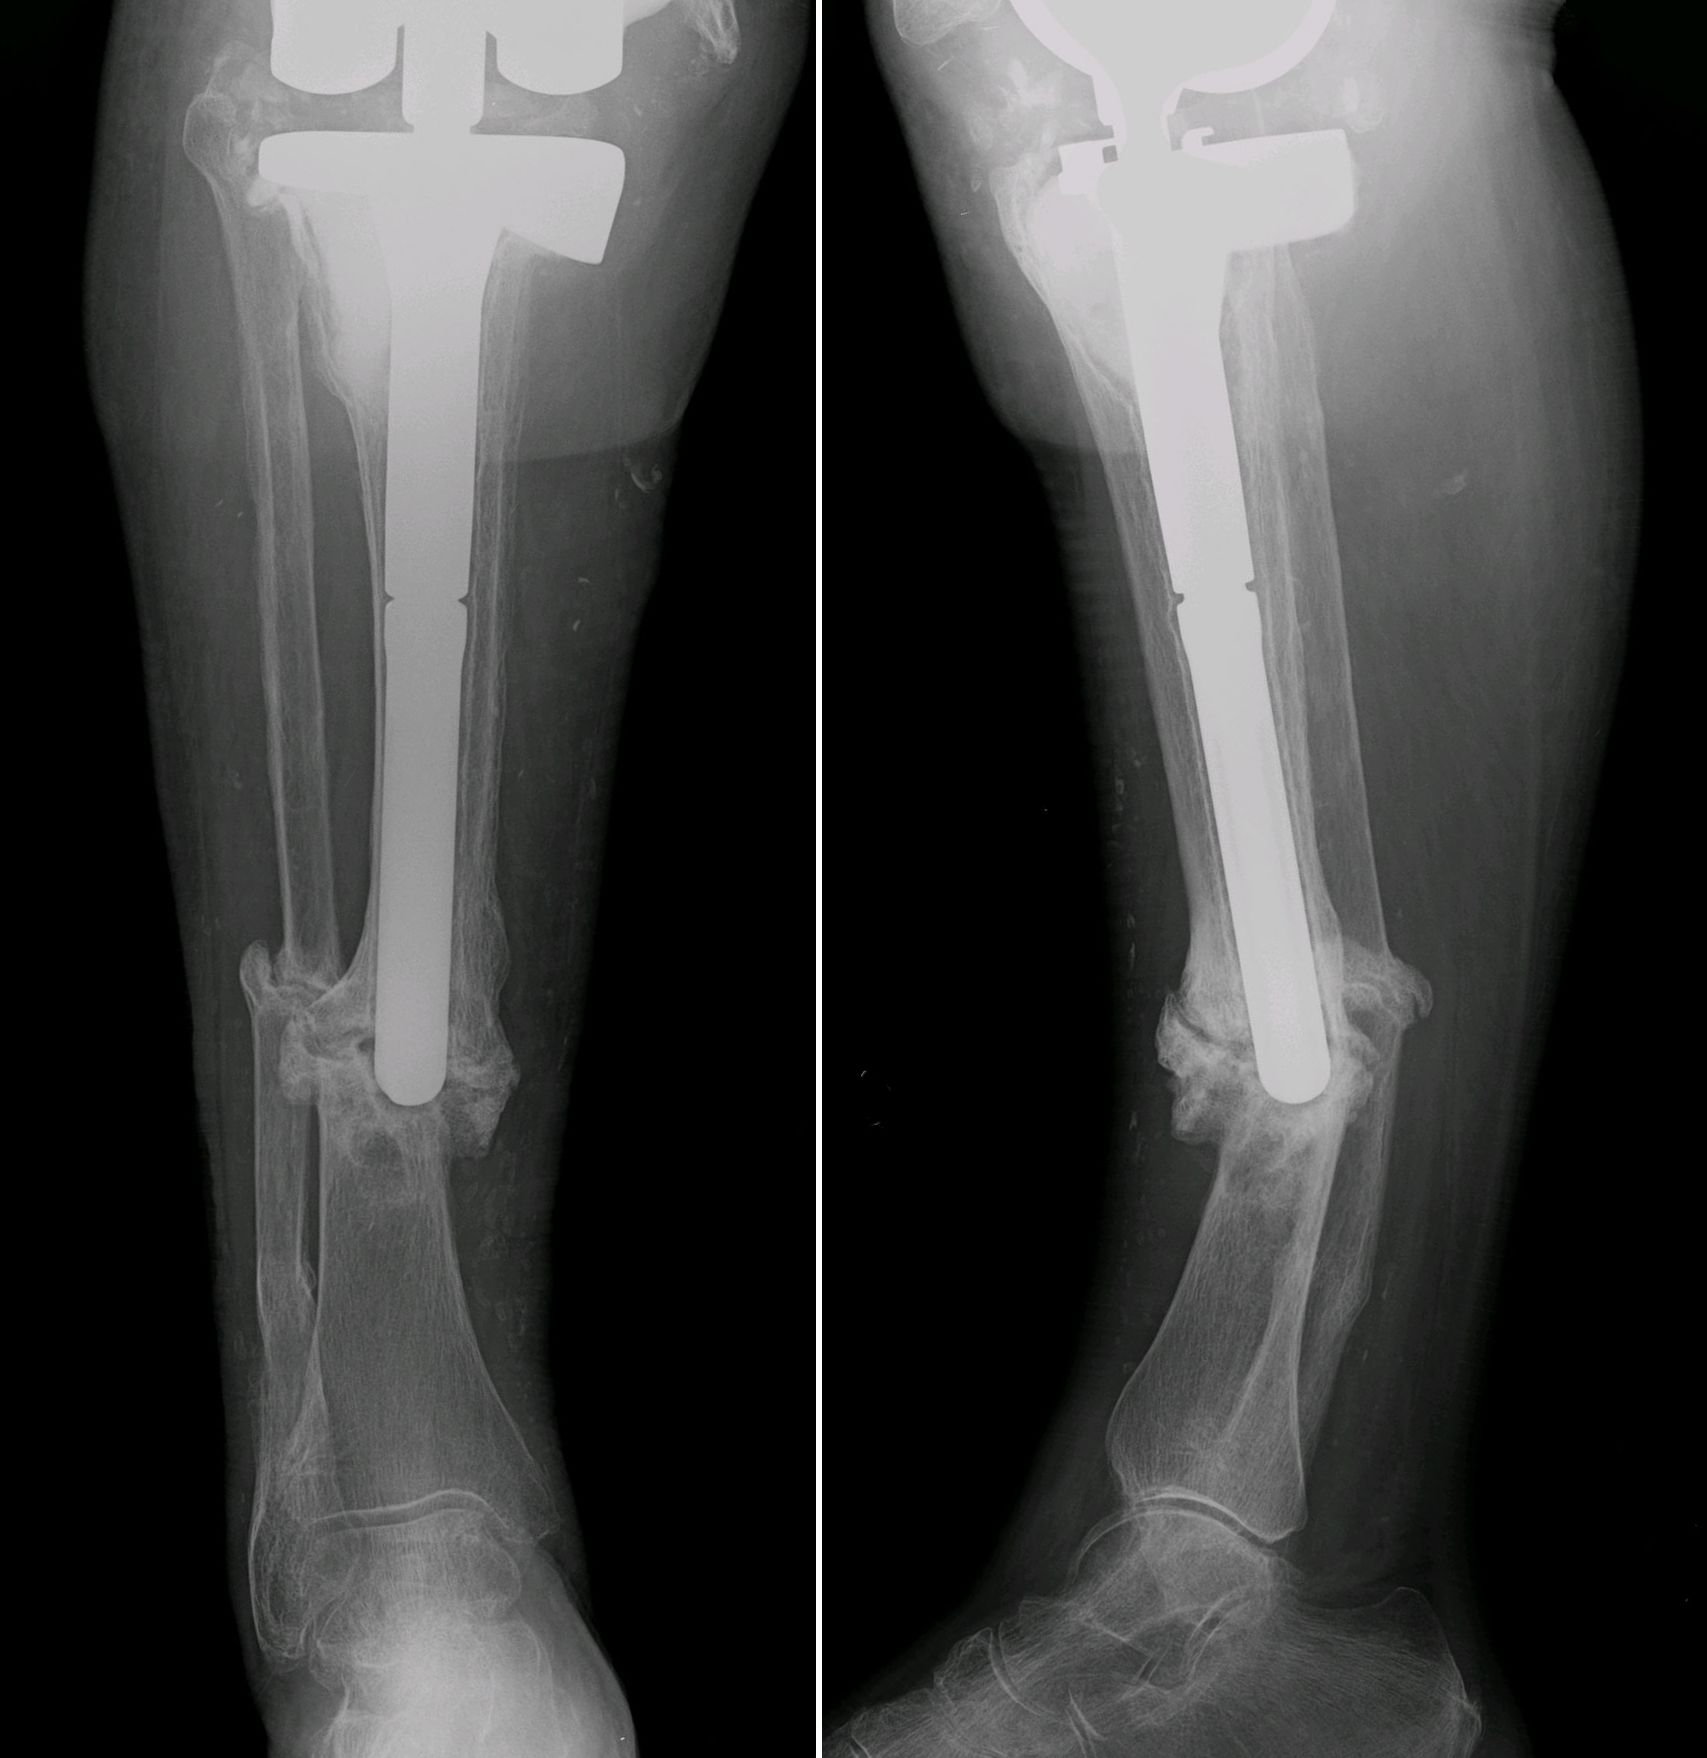 Fibular fixation as an adjuvant to tibial intramedullary nailing in the treatment of combined distal third tibia and fibula fractures: a biomechanical investigation